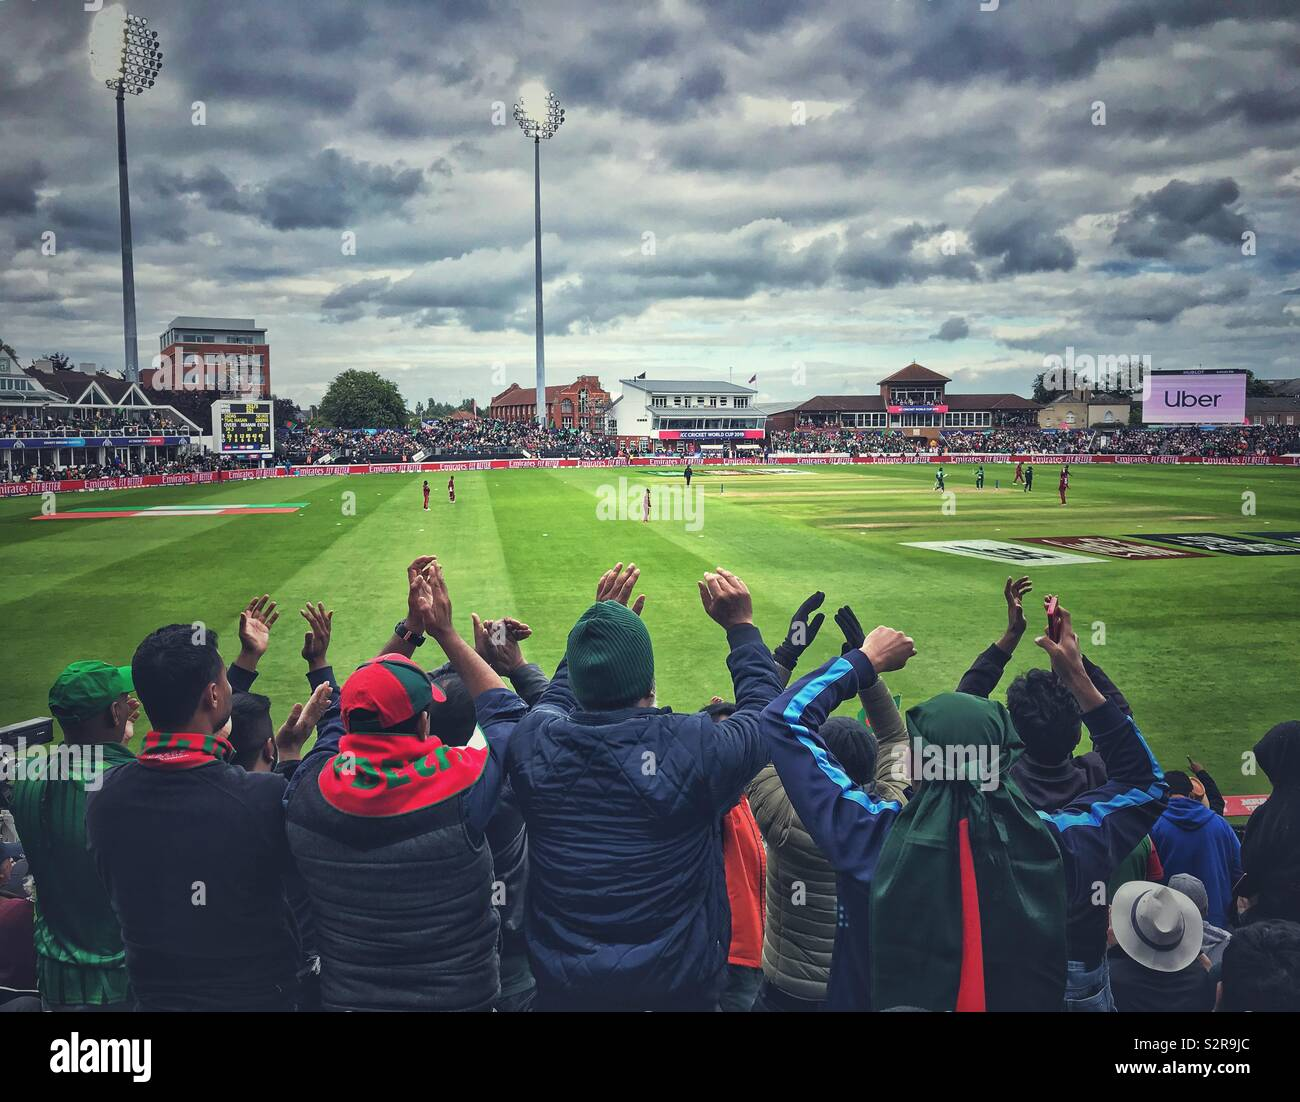 Bangladesh cricket fans enjoying themselves in the match against the West Indies at the Cricket World Cup at Taunton, Somerset - Stock Image